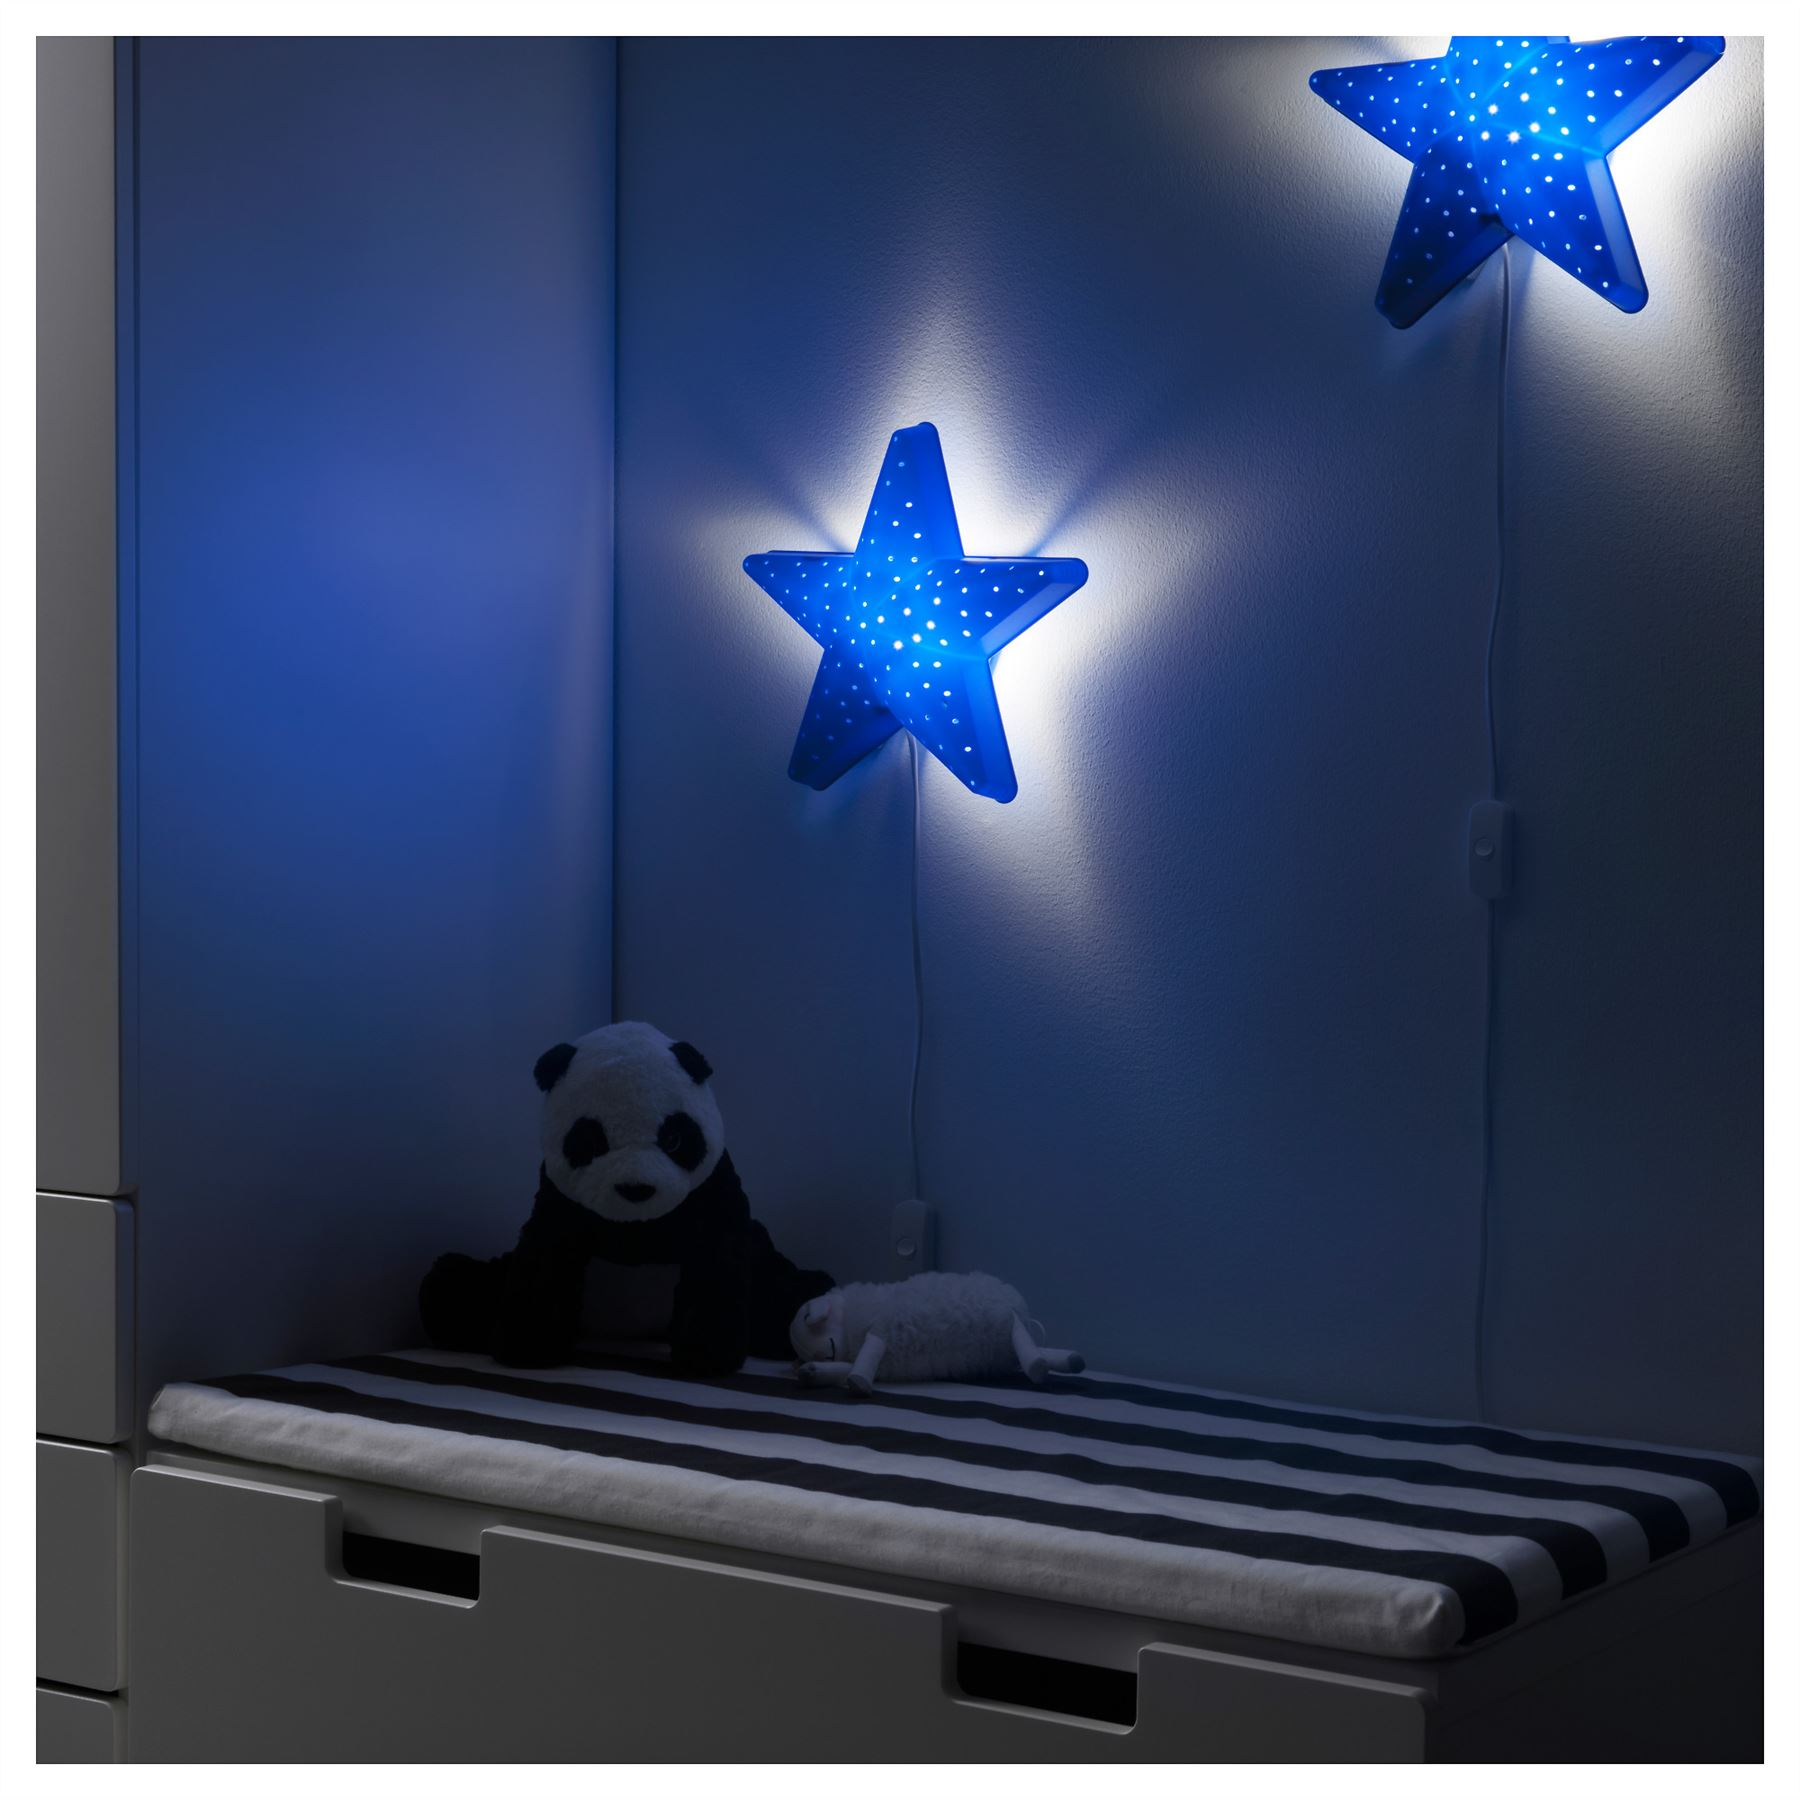 Exceptional IKEA Smila Childrenu0027s Bedroom Wall Lamp Baby Night Light Blue Star Design Inspirations